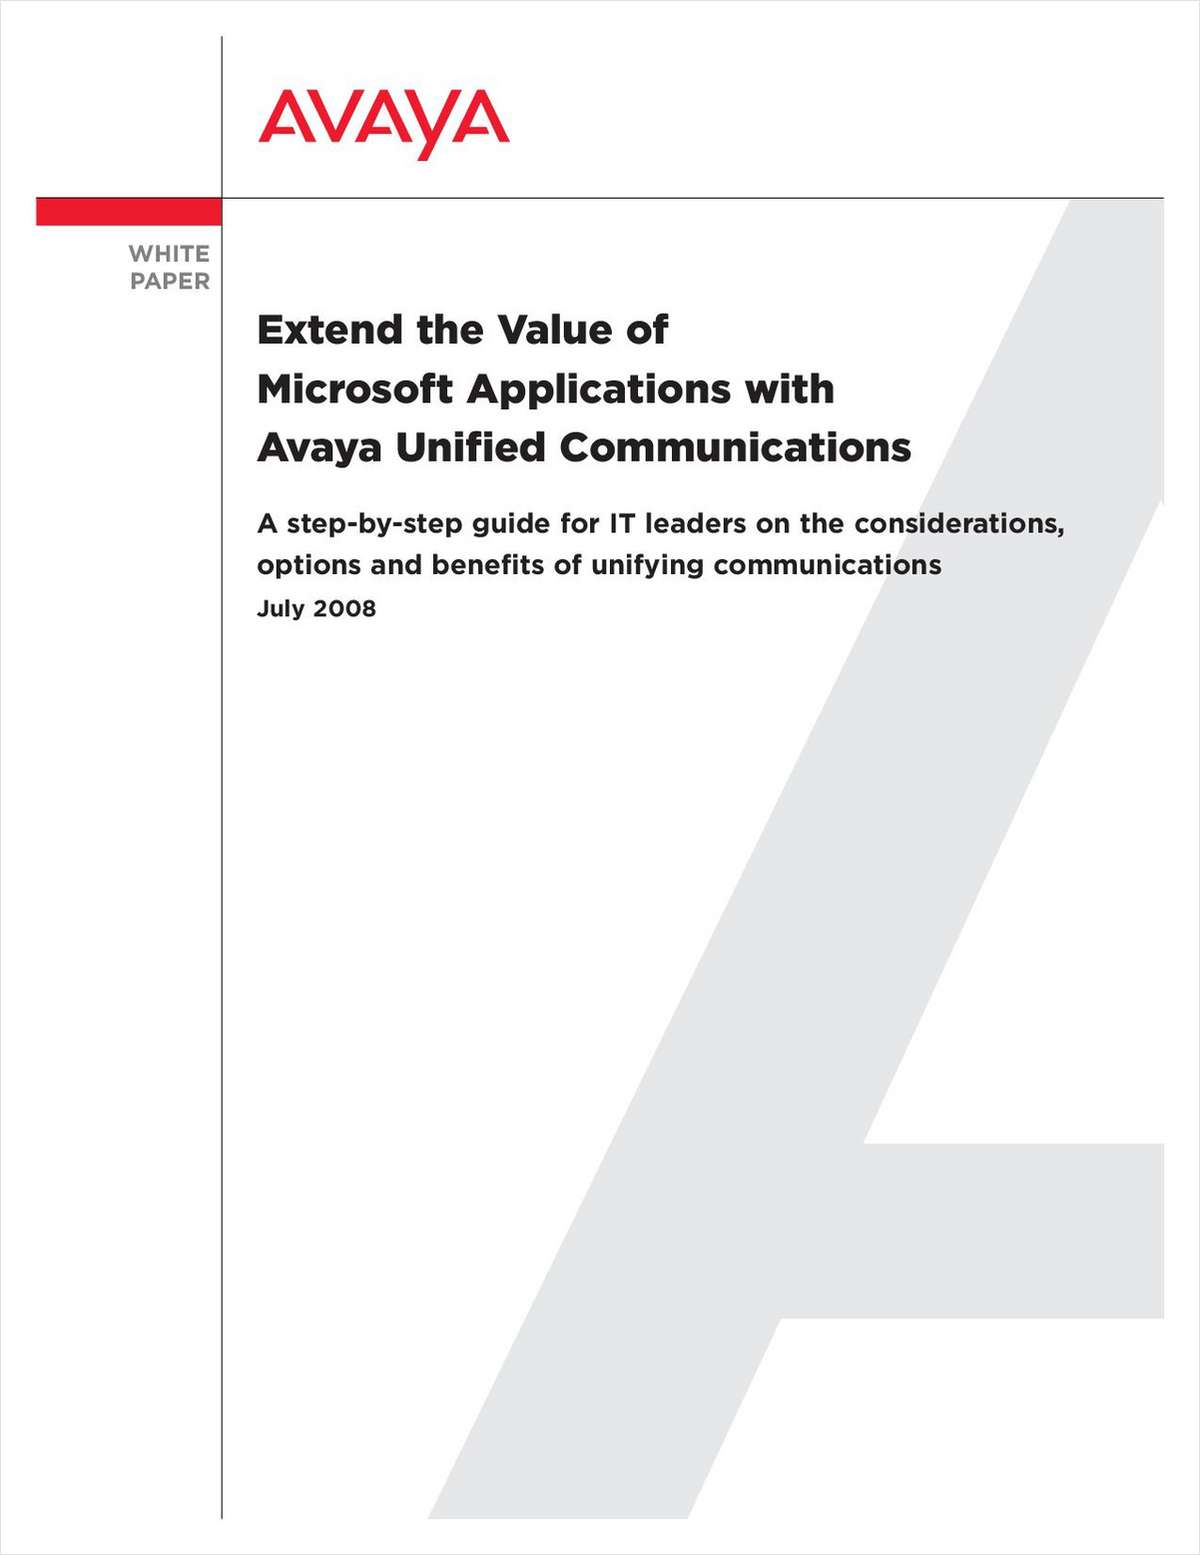 Extend the Value of Microsoft Applications with Avaya Unified Communications